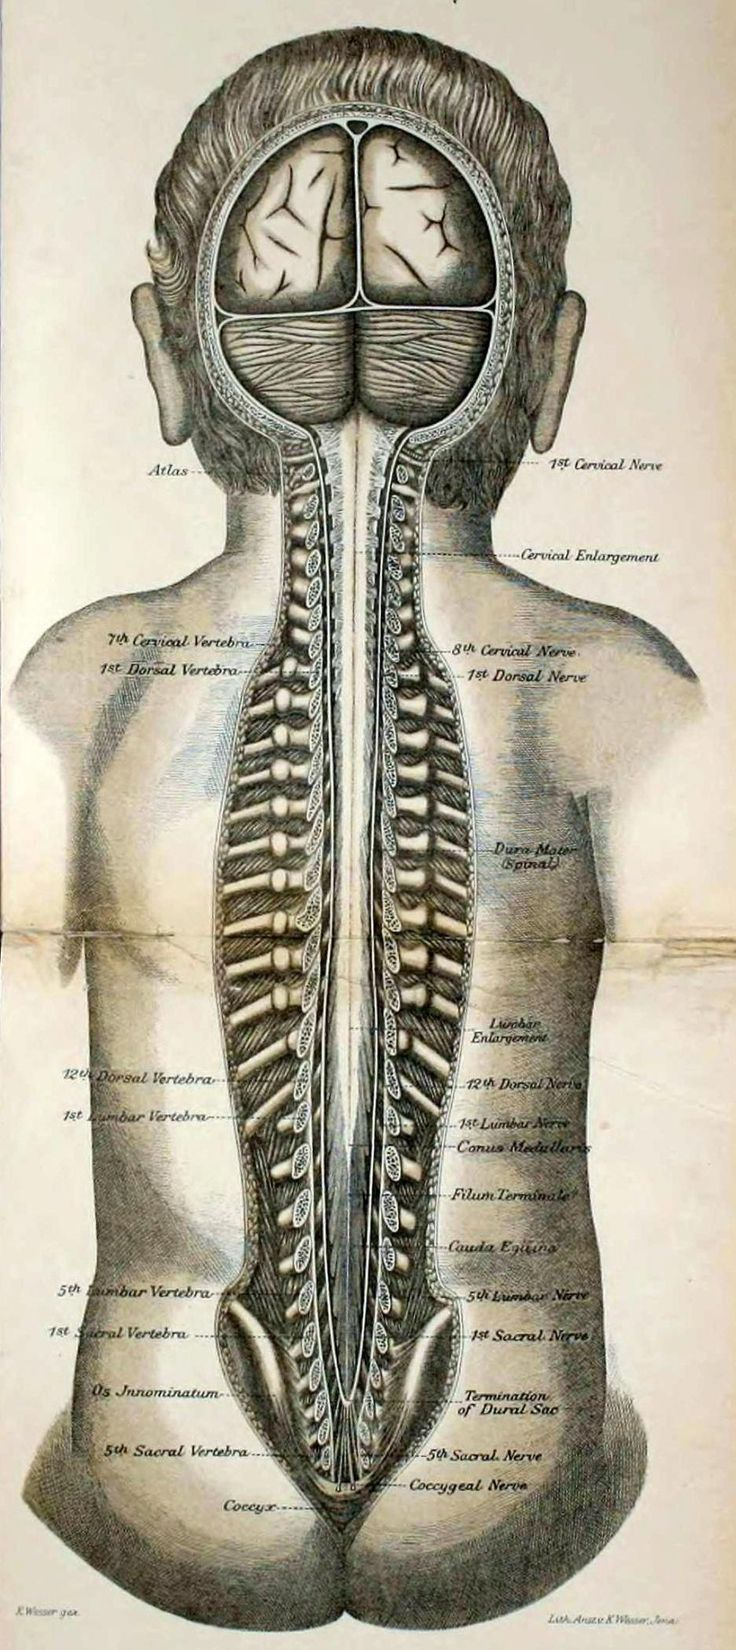 The Preparation of Oblique Spinal Cord Slices for Ventral ...